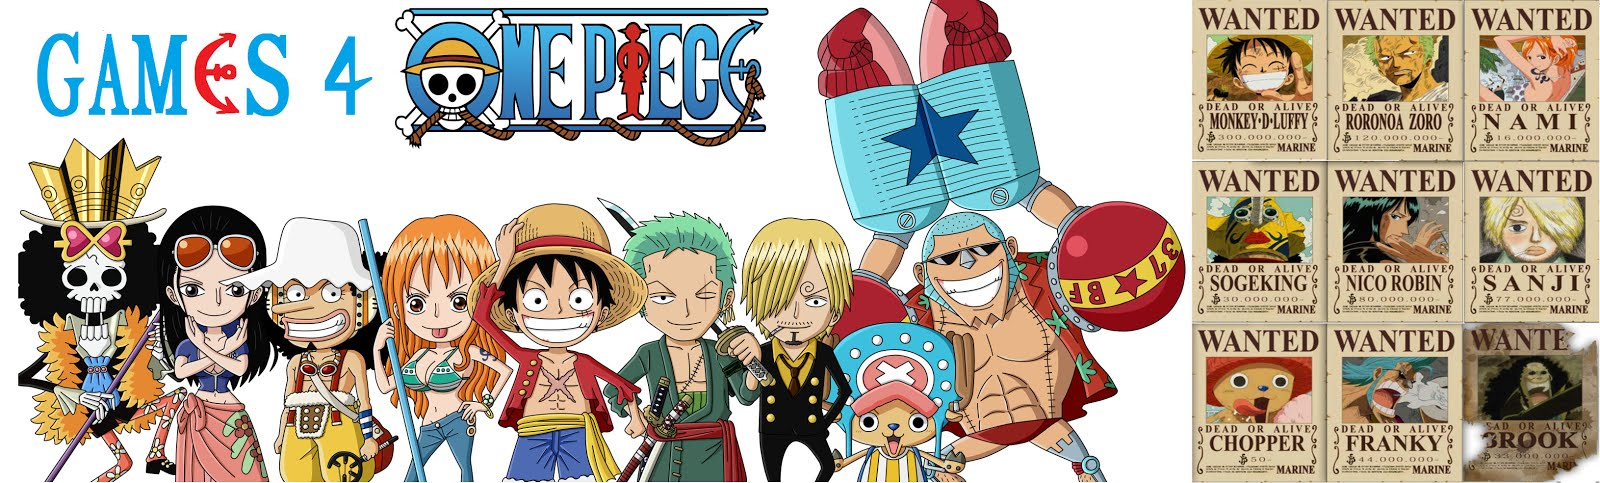 One-Piece Games | Android, PS, PC, Online